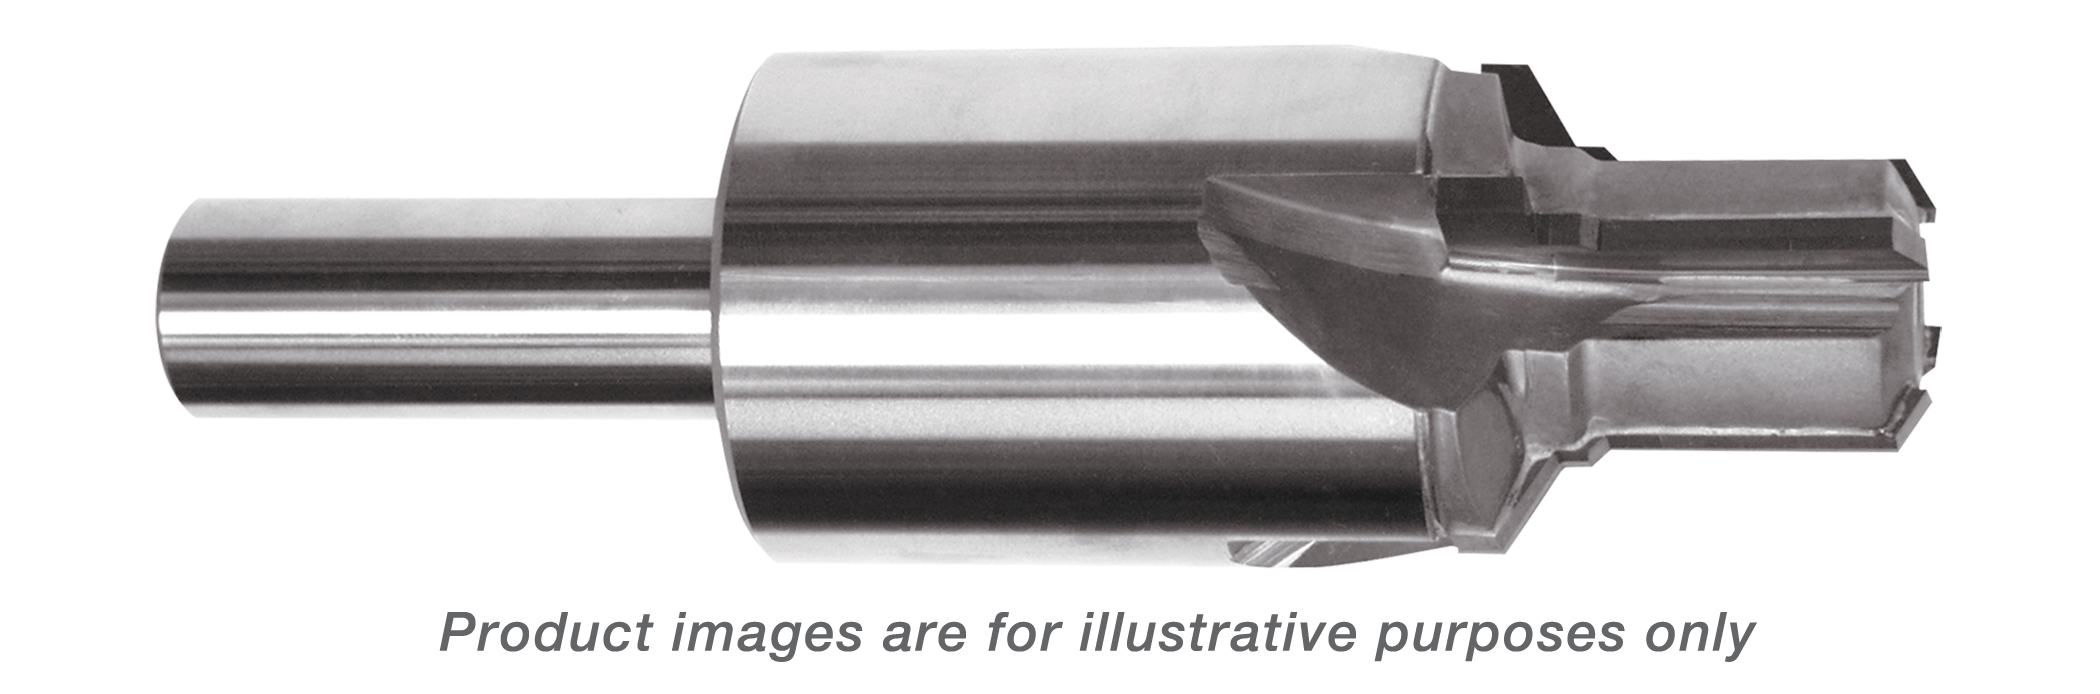 REAMER PILOT PORT TOOL CARBIDE TIPPED 3/8-24 THREAD (3/16 TUBE) 5.100 OAL (ALSO FOR AS5202) - 4 FLUTES ALTiN COATED